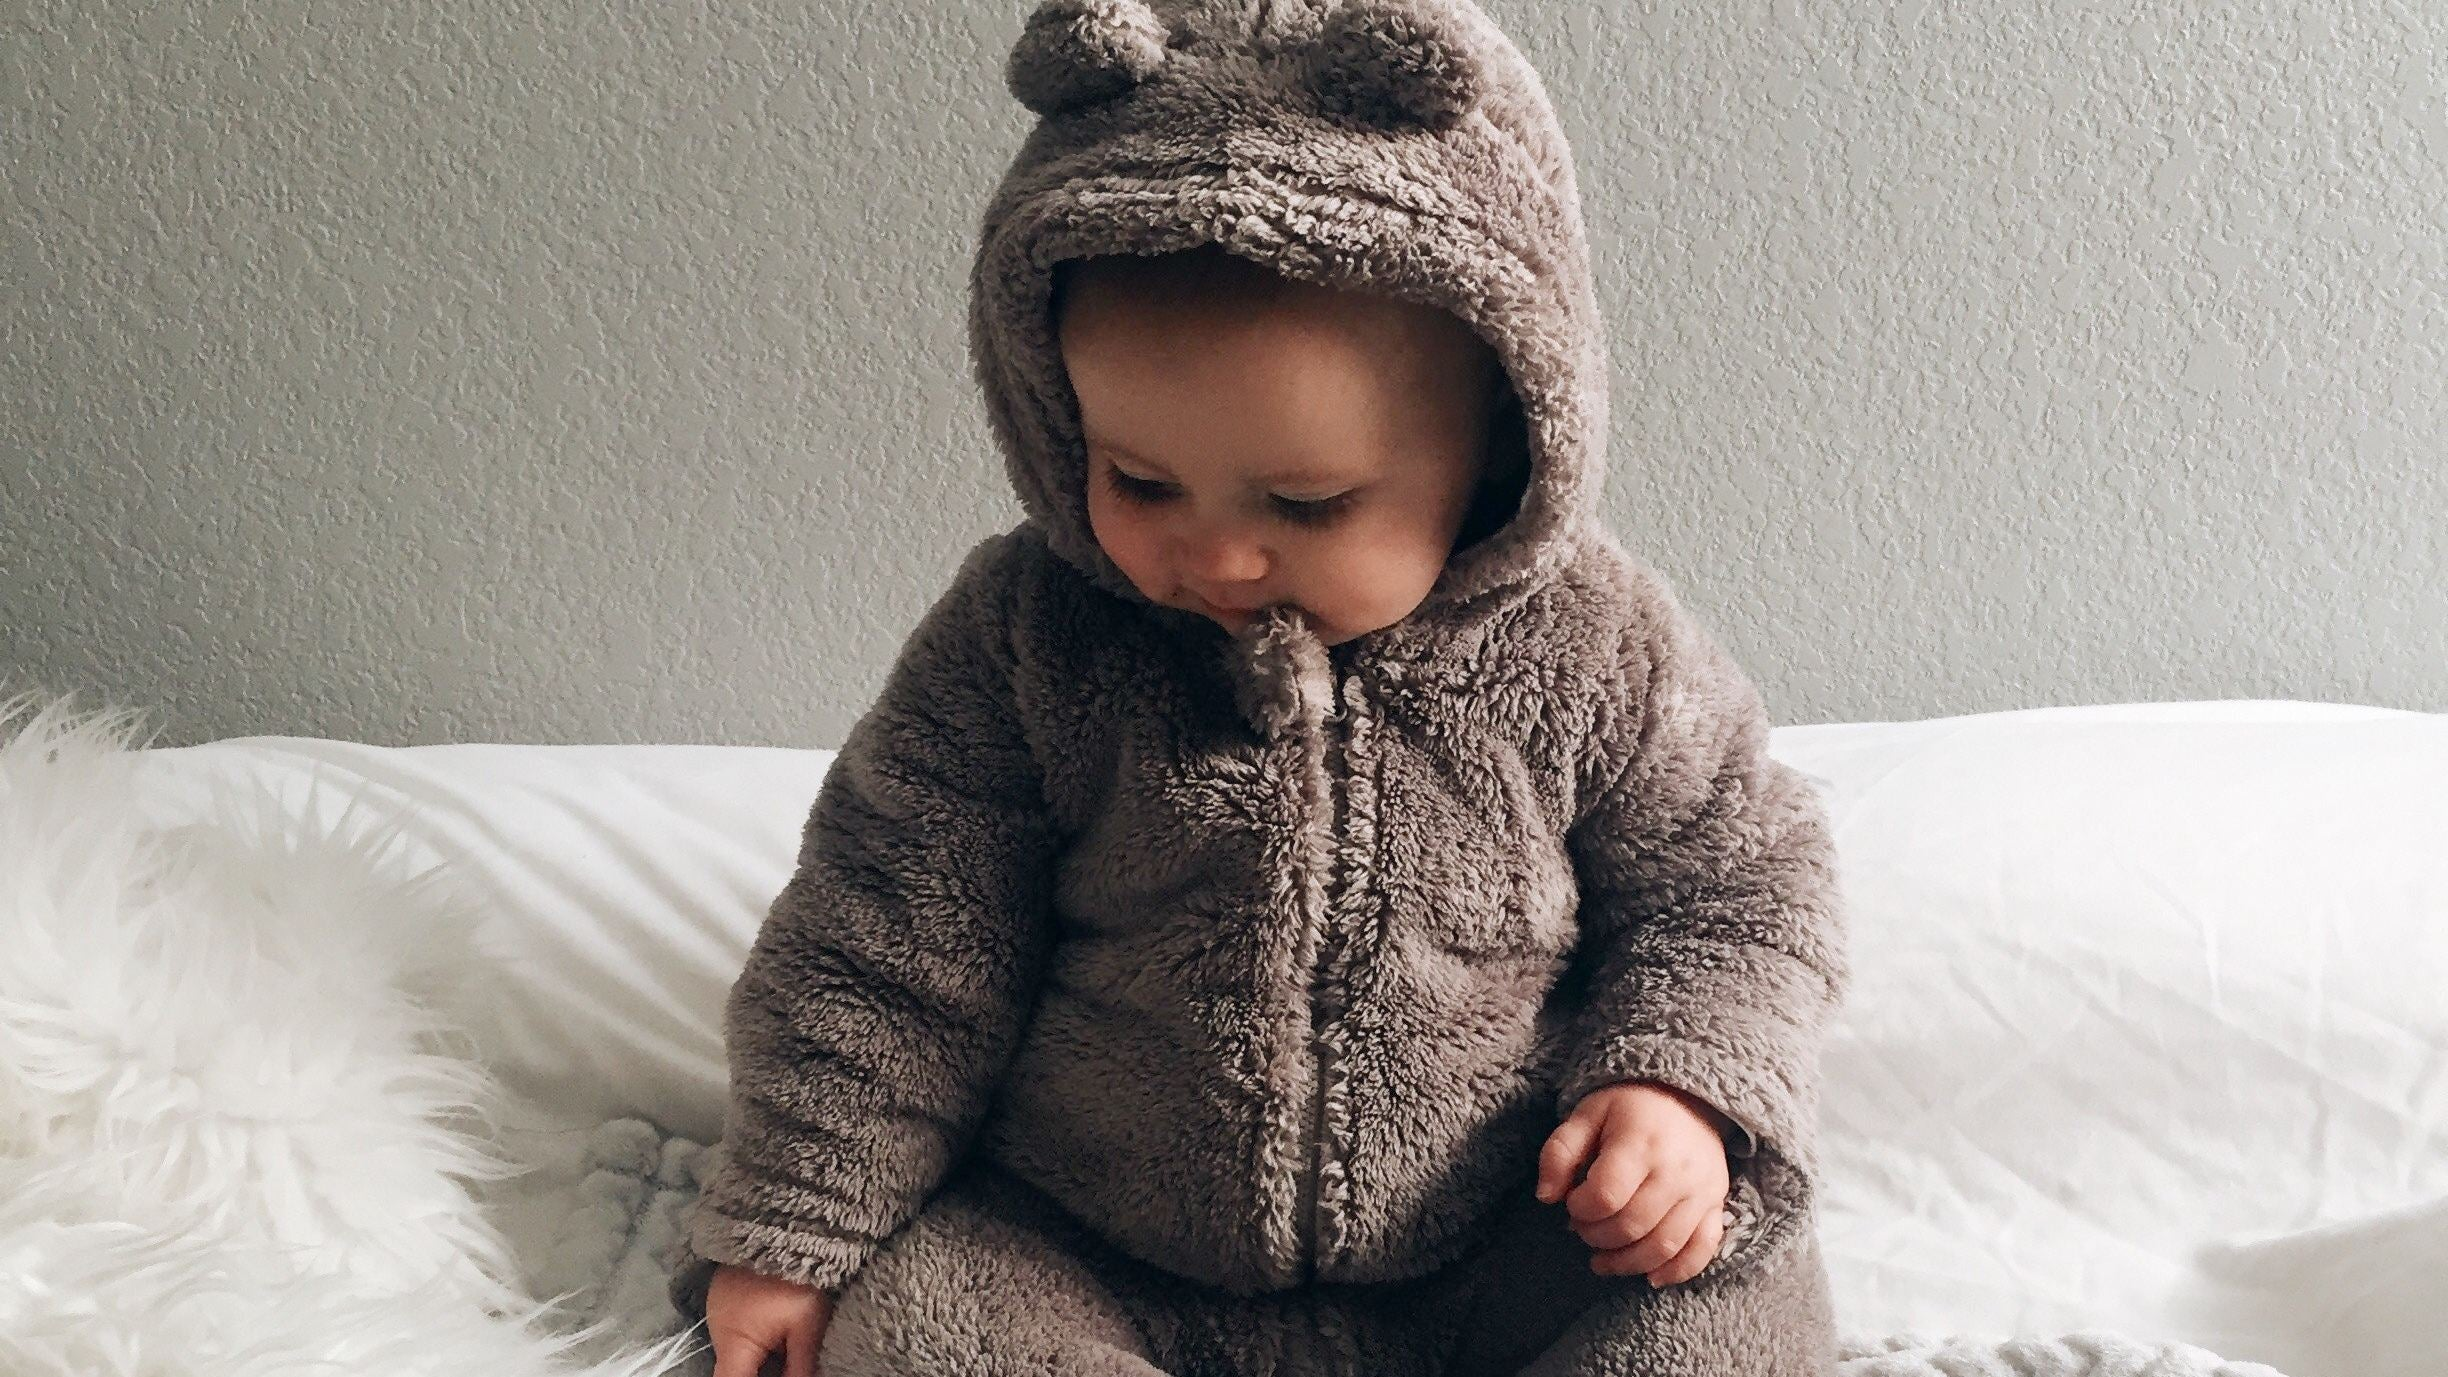 How To Dress A Baby In Cold Weather